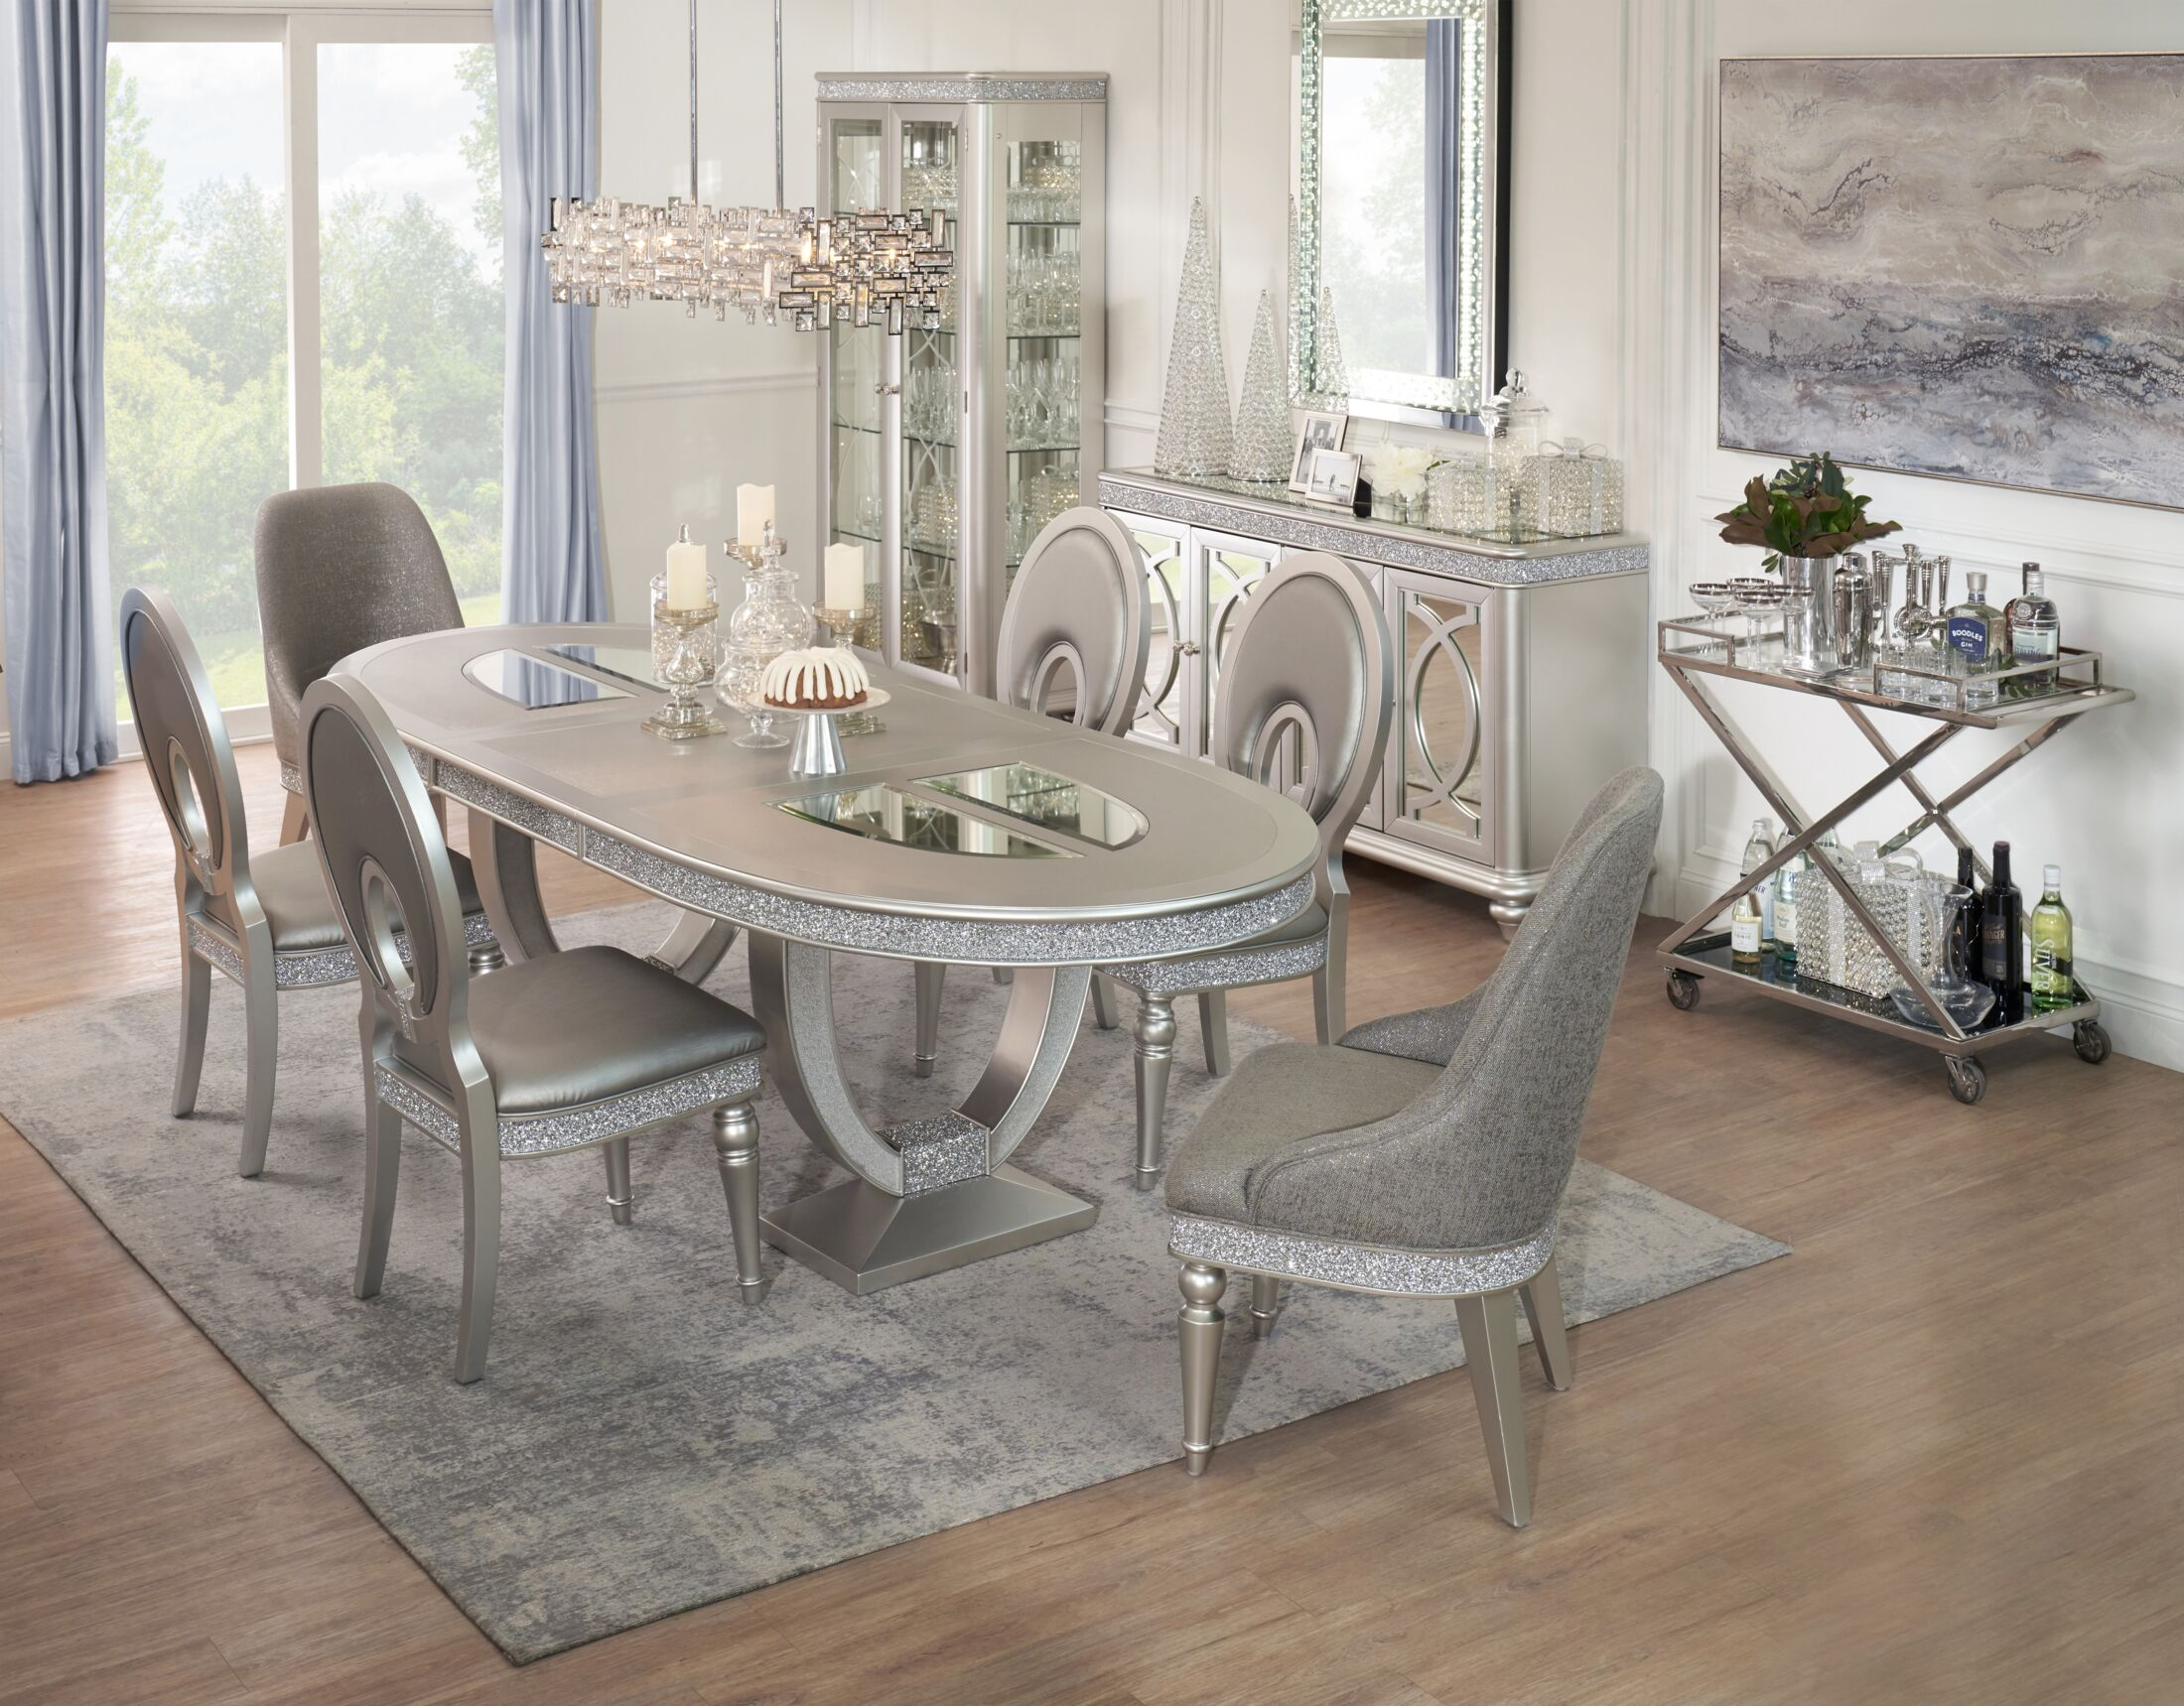 The Posh Dining Collection